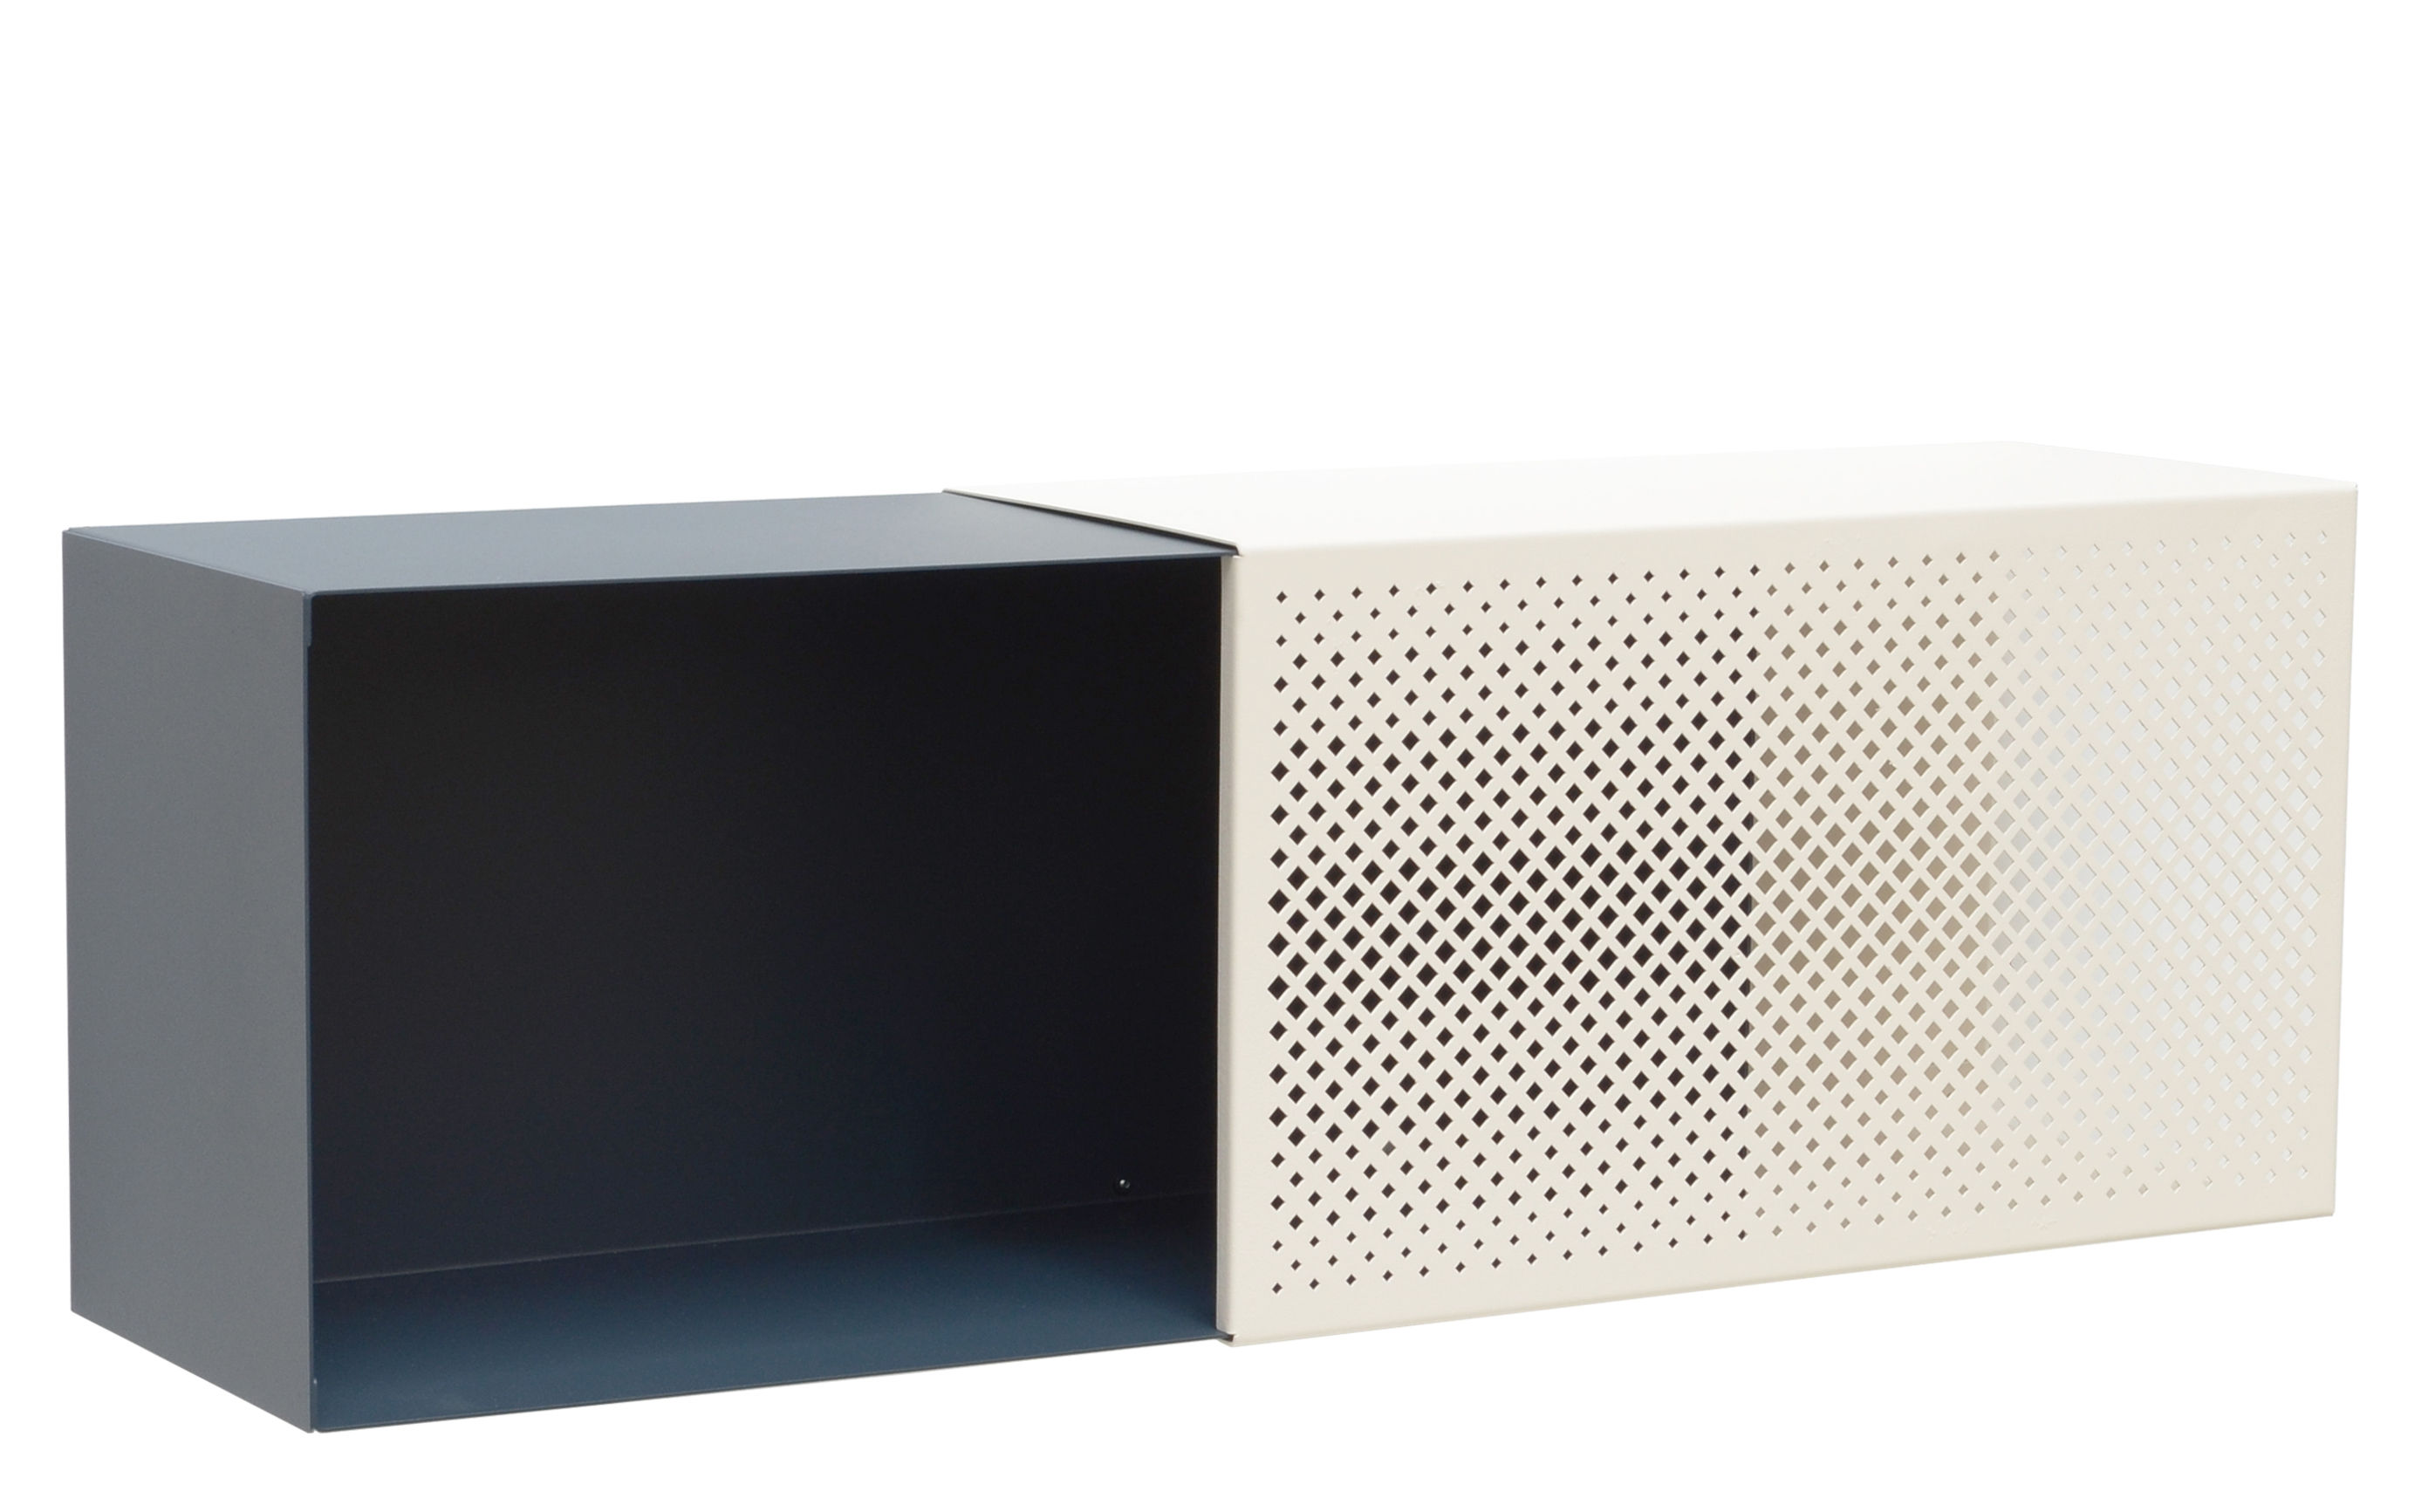 Furniture - Bookcases & Bookshelves - Perfo Ba Shelf - Microperforated sheet metal - 70 x 23 cm by Presse citron - Navy / Beige - Lacquered steel